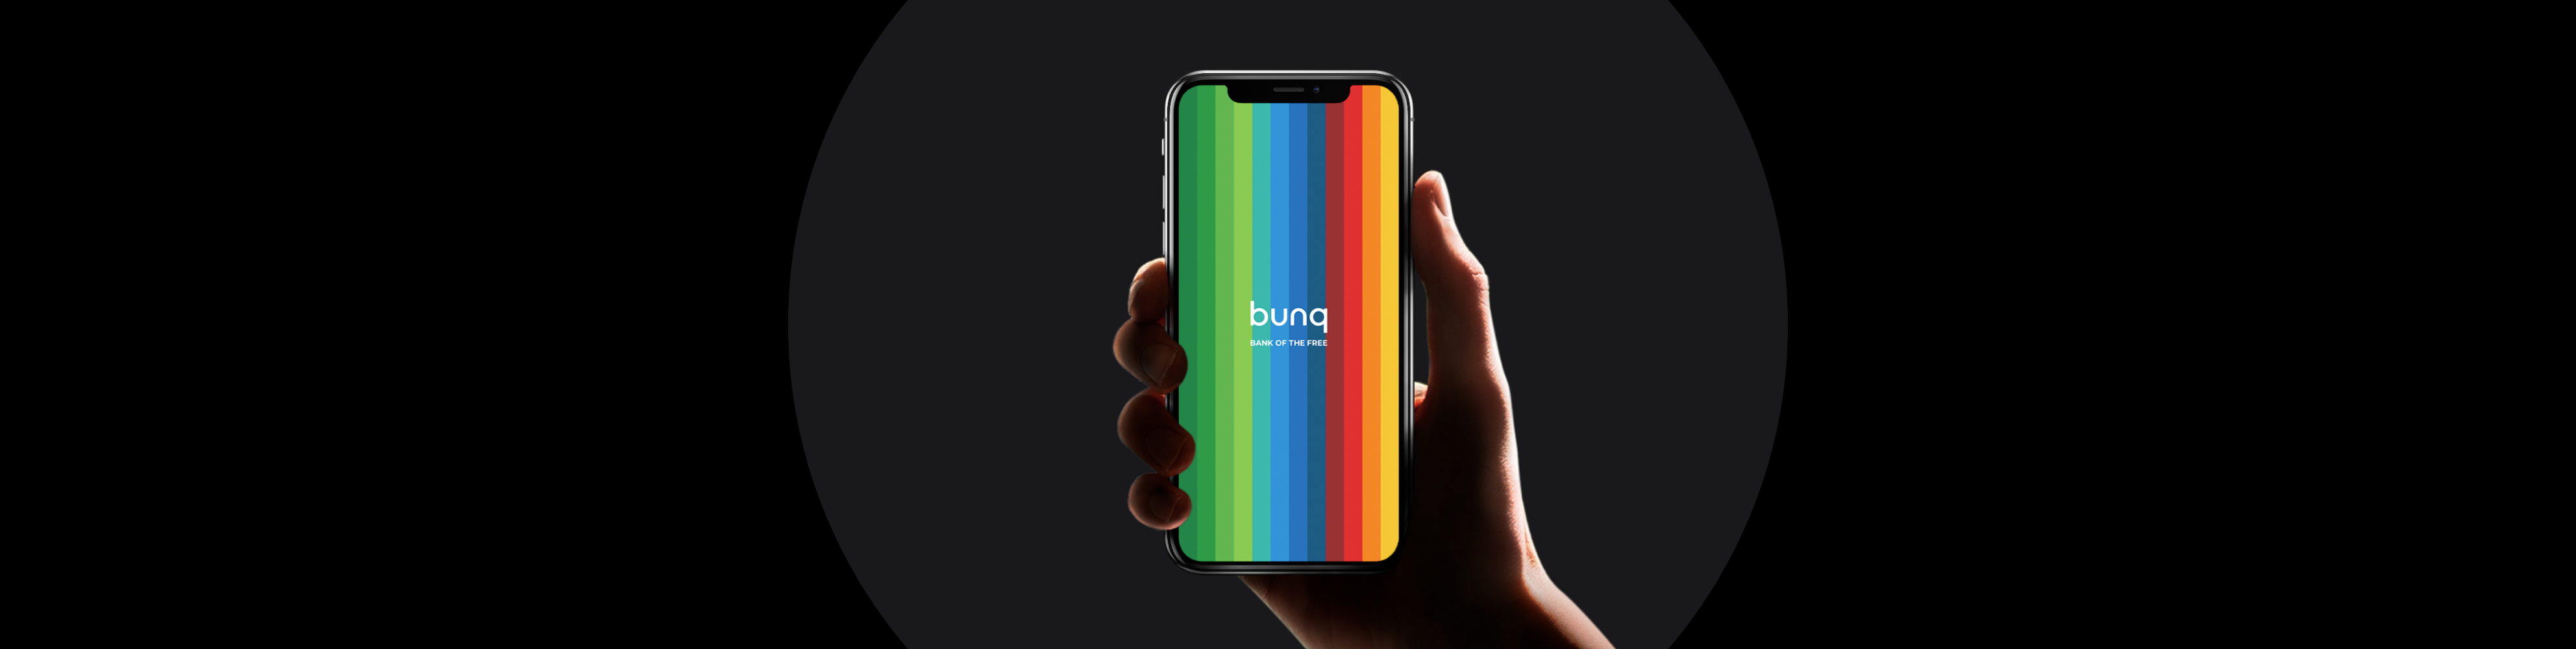 Hand holding a phone with the bunq app